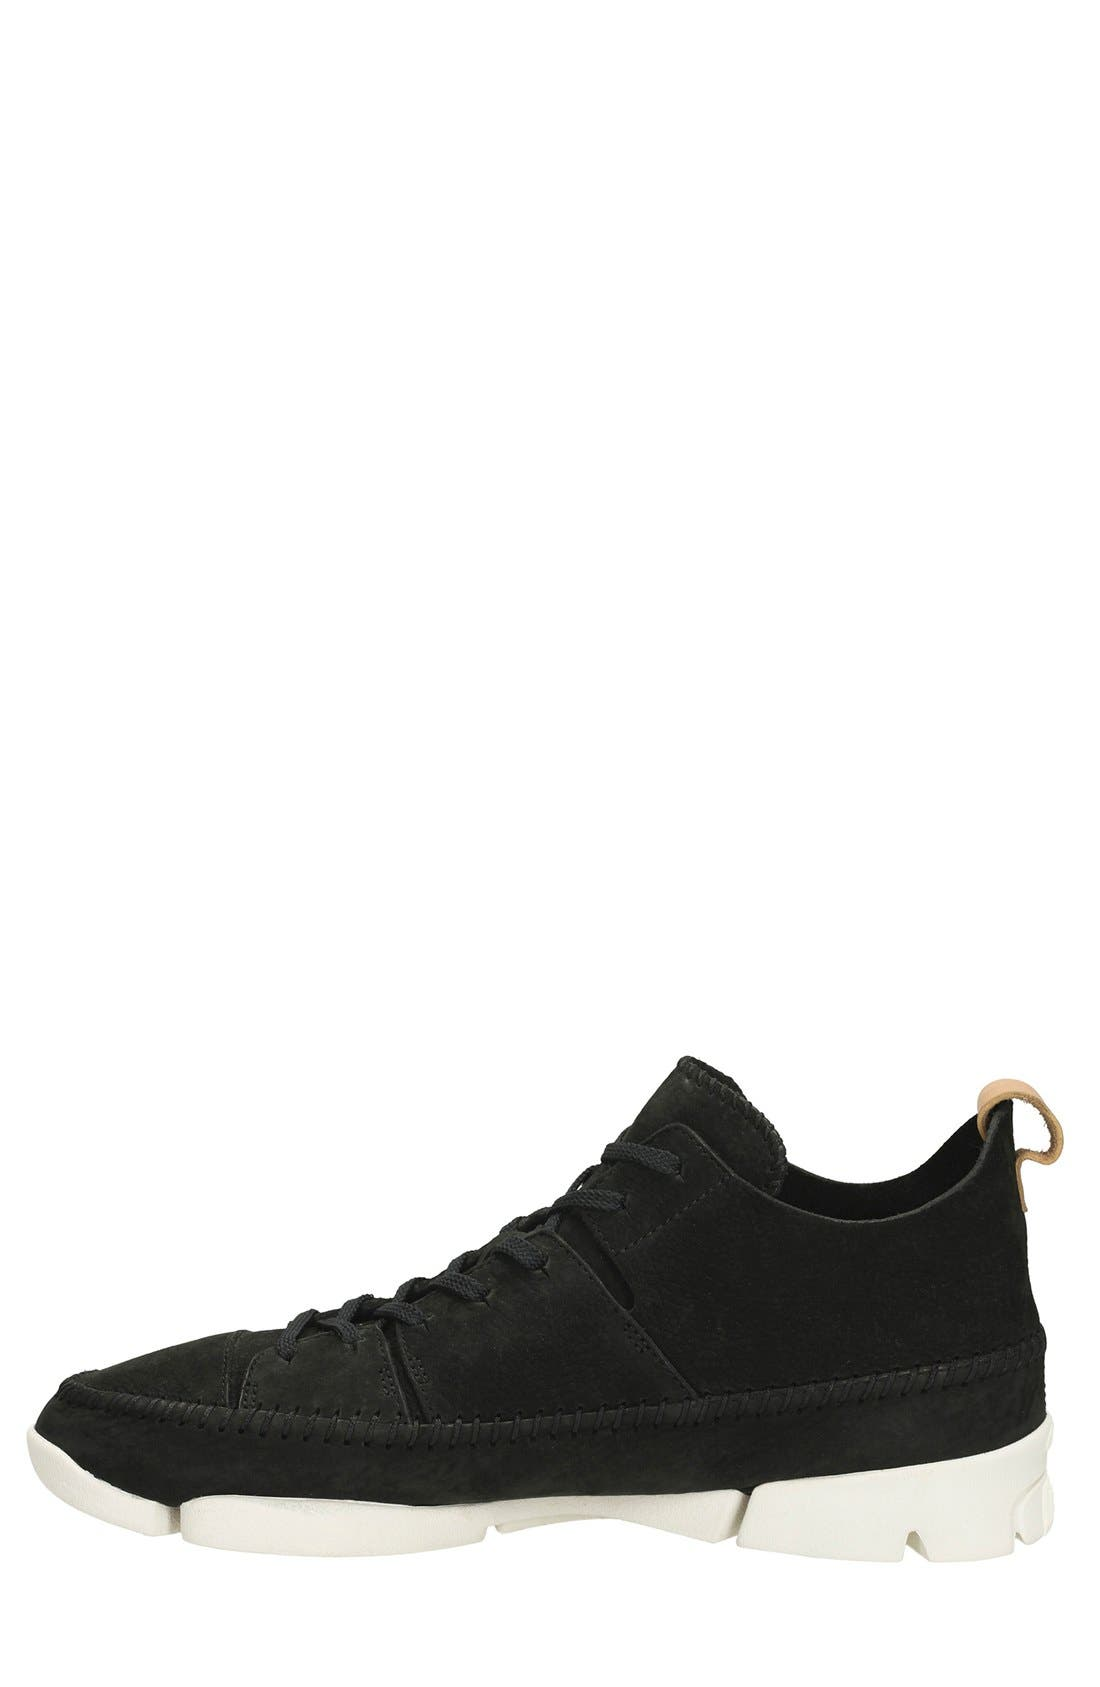 Clarks<sup>®</sup> 'Trigenic Flex' Leather Sneaker,                             Alternate thumbnail 2, color,                             Black